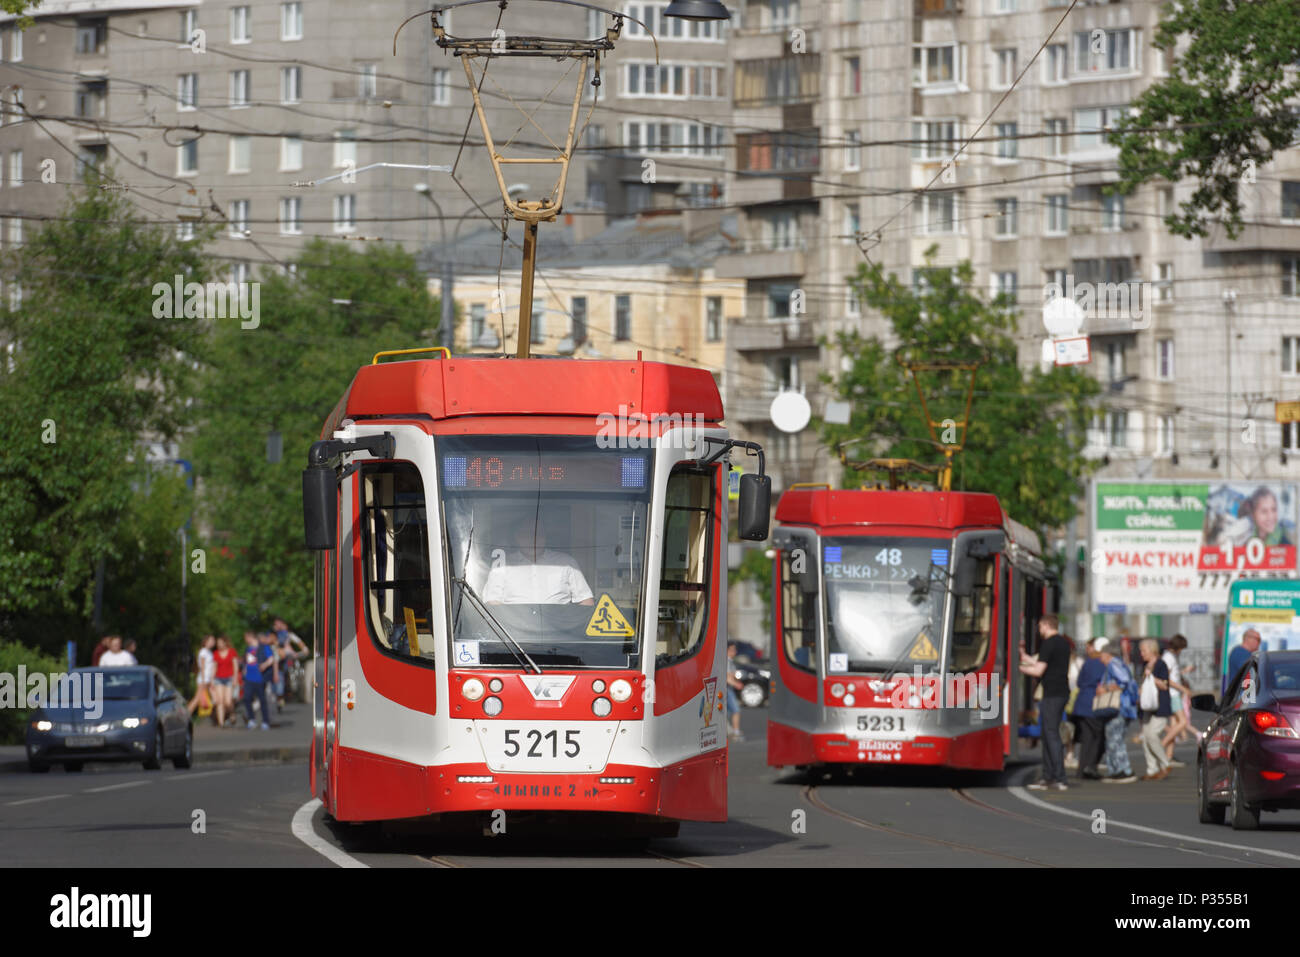 St. Petersburg, Russia - June 16, 2018: Modern tram produced by Ust-Katavsky railroad car building plant on line 48 which services the direction to Sa - Stock Image